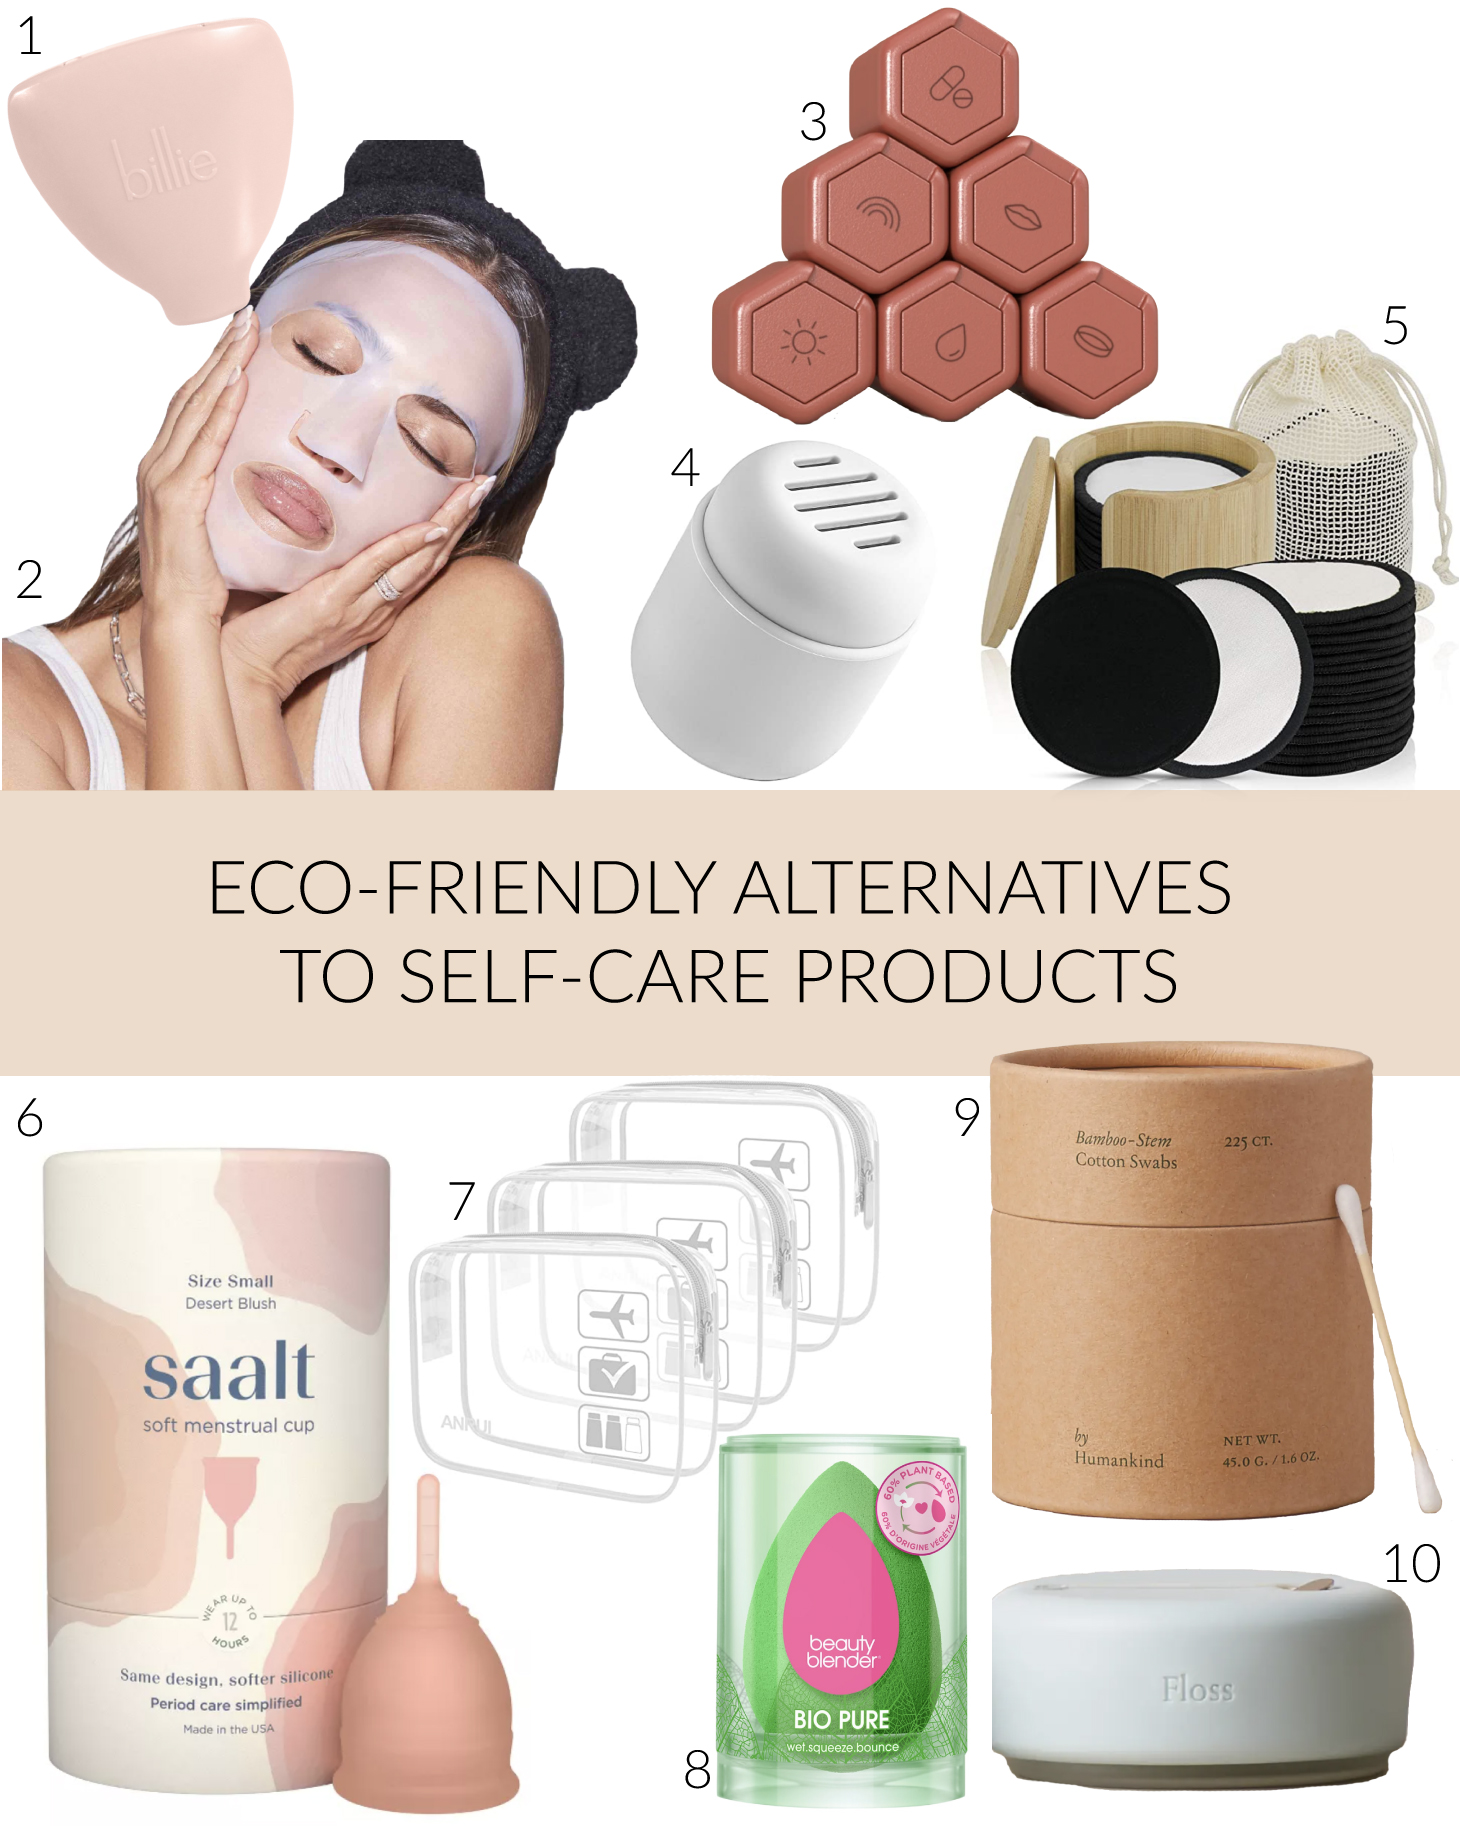 eco-friendly self care products